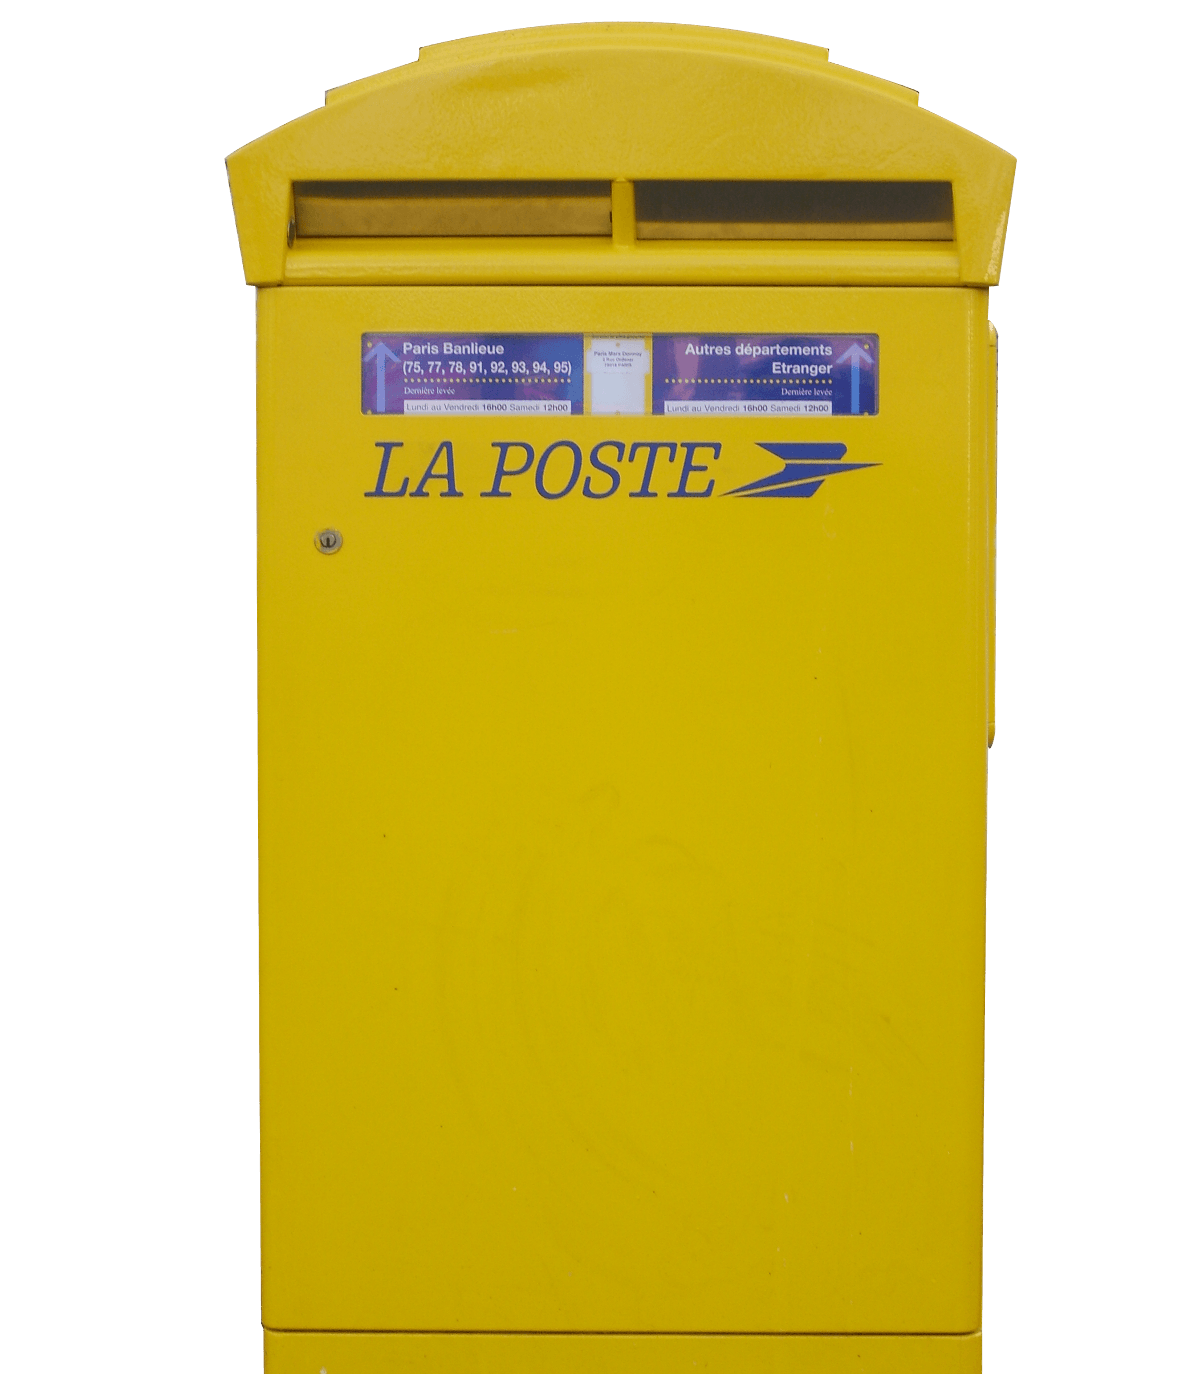 Transfert du courriers